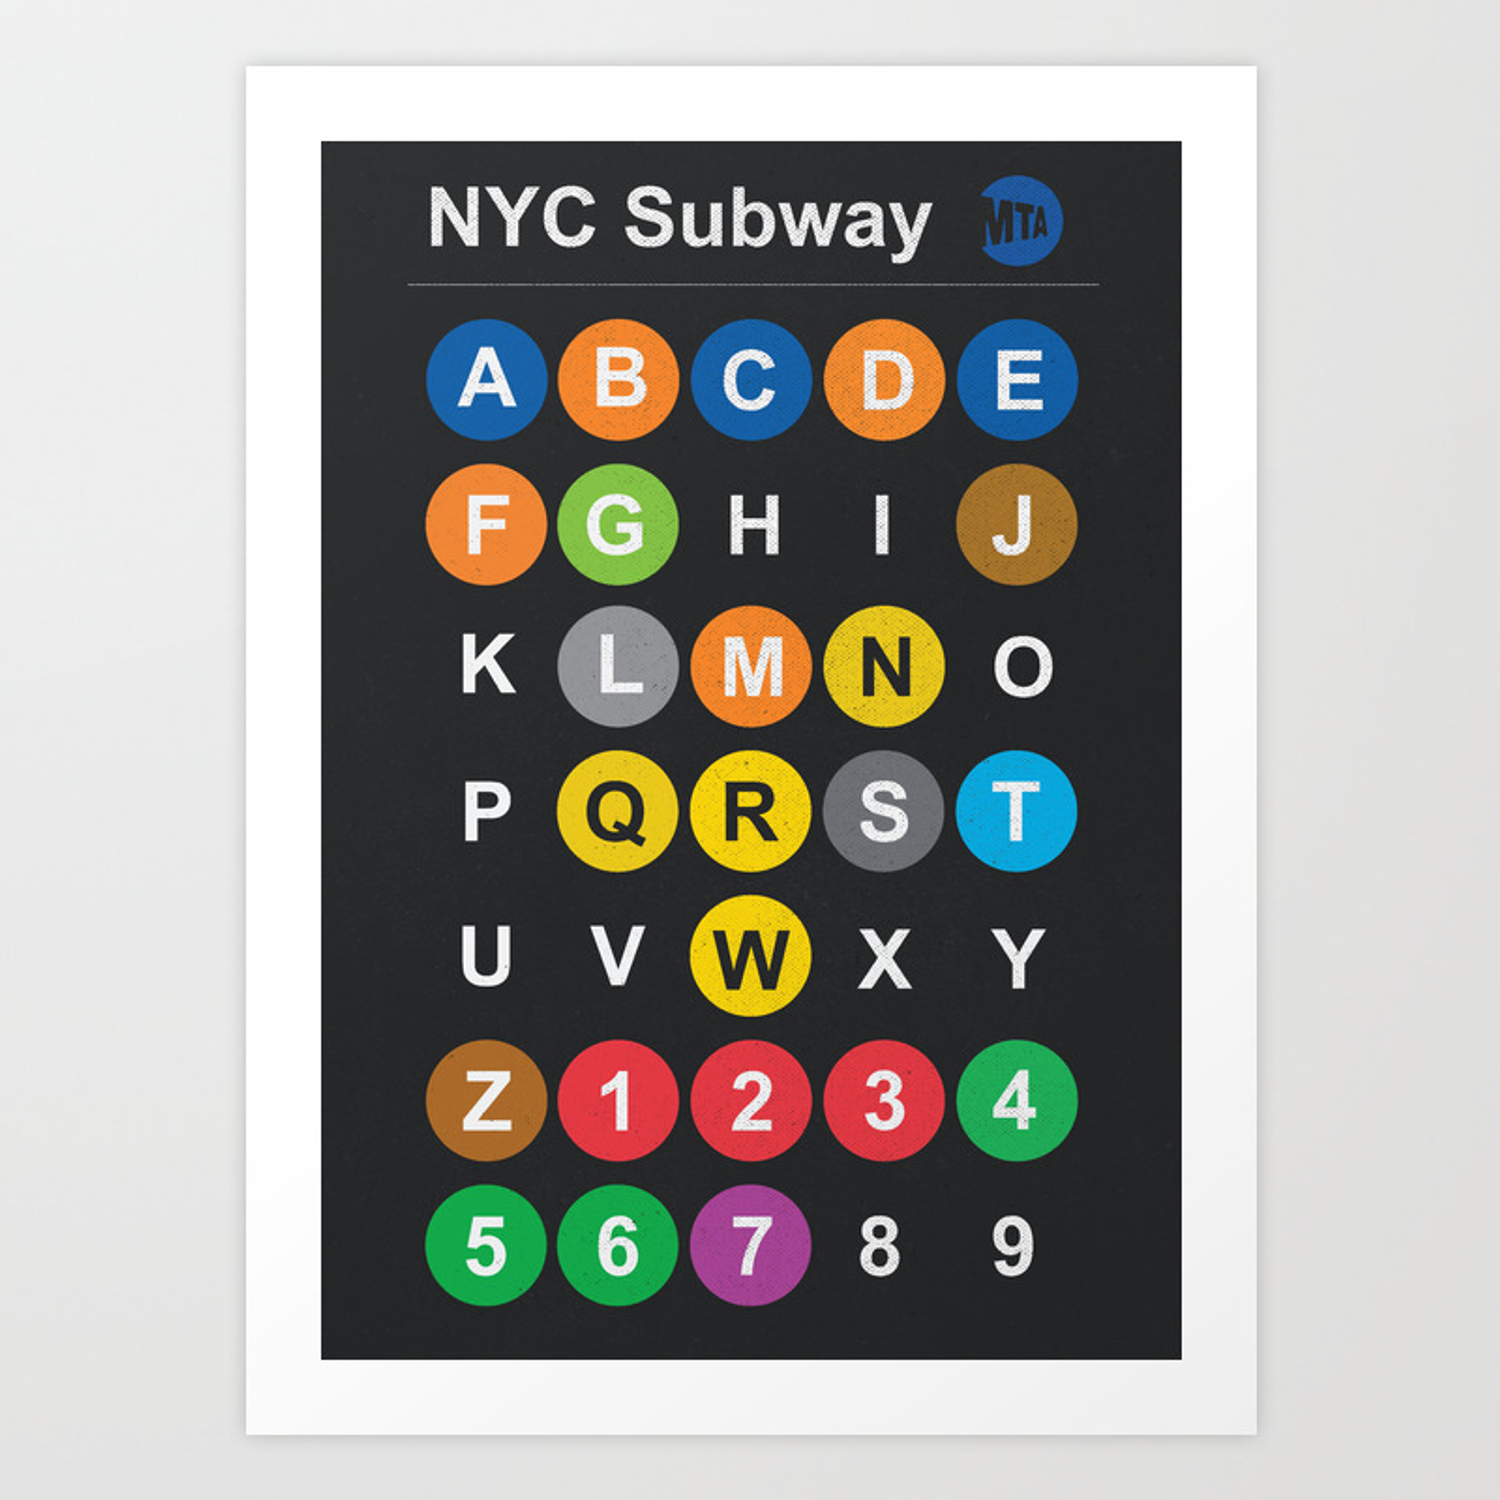 Manhattan Mta Mini Subway Map And Address Finder.New York City Subway Alphabet Map Nyc Lettering Illustration Dark Version Usa Typography Art Print